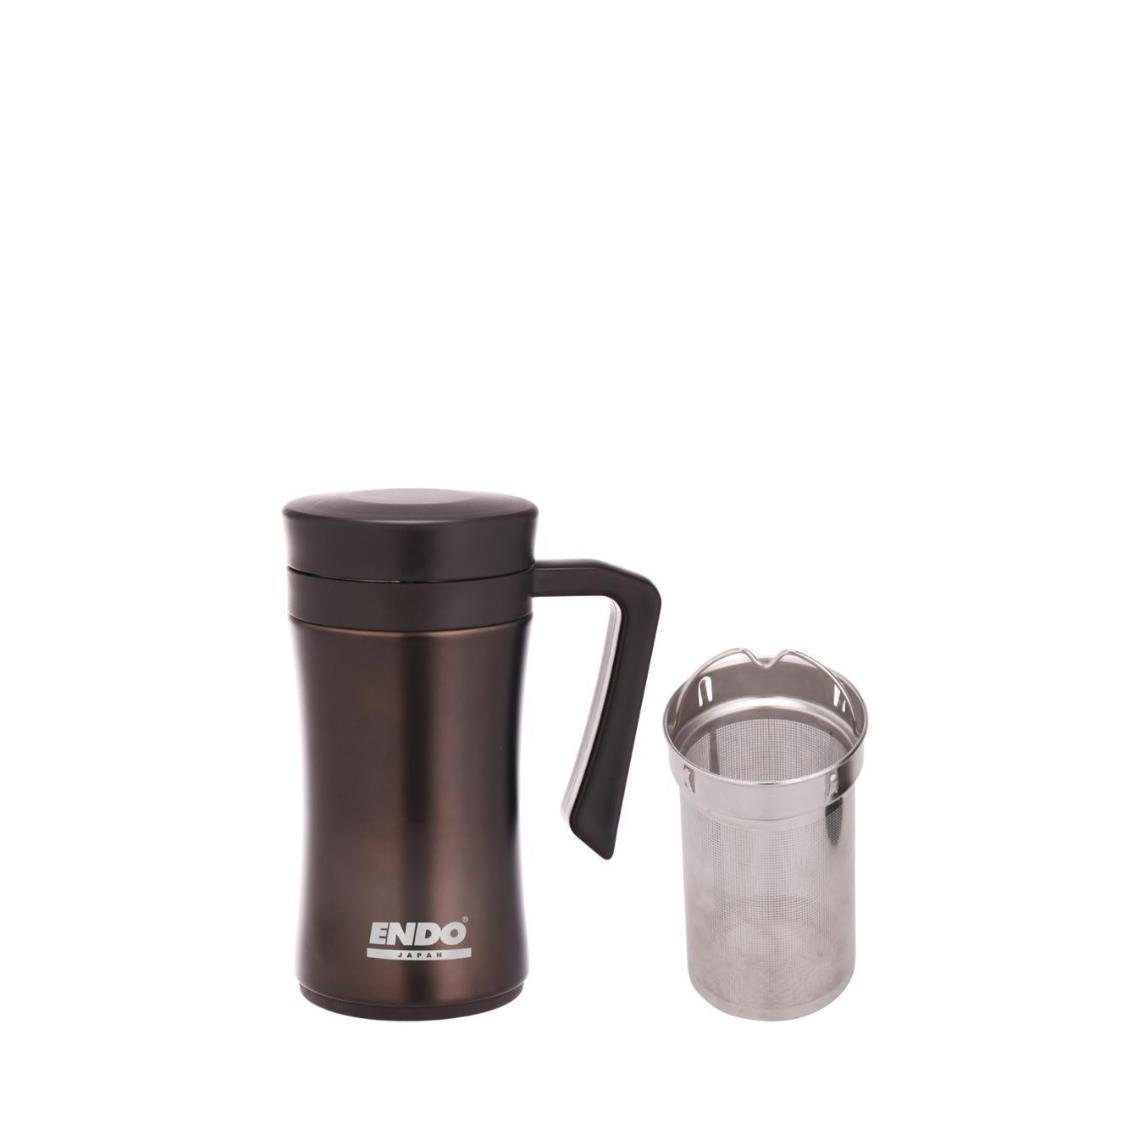 450Ml Double Stainless Steel Desk Mug With Tea Strainer Urban Brown CX-3001